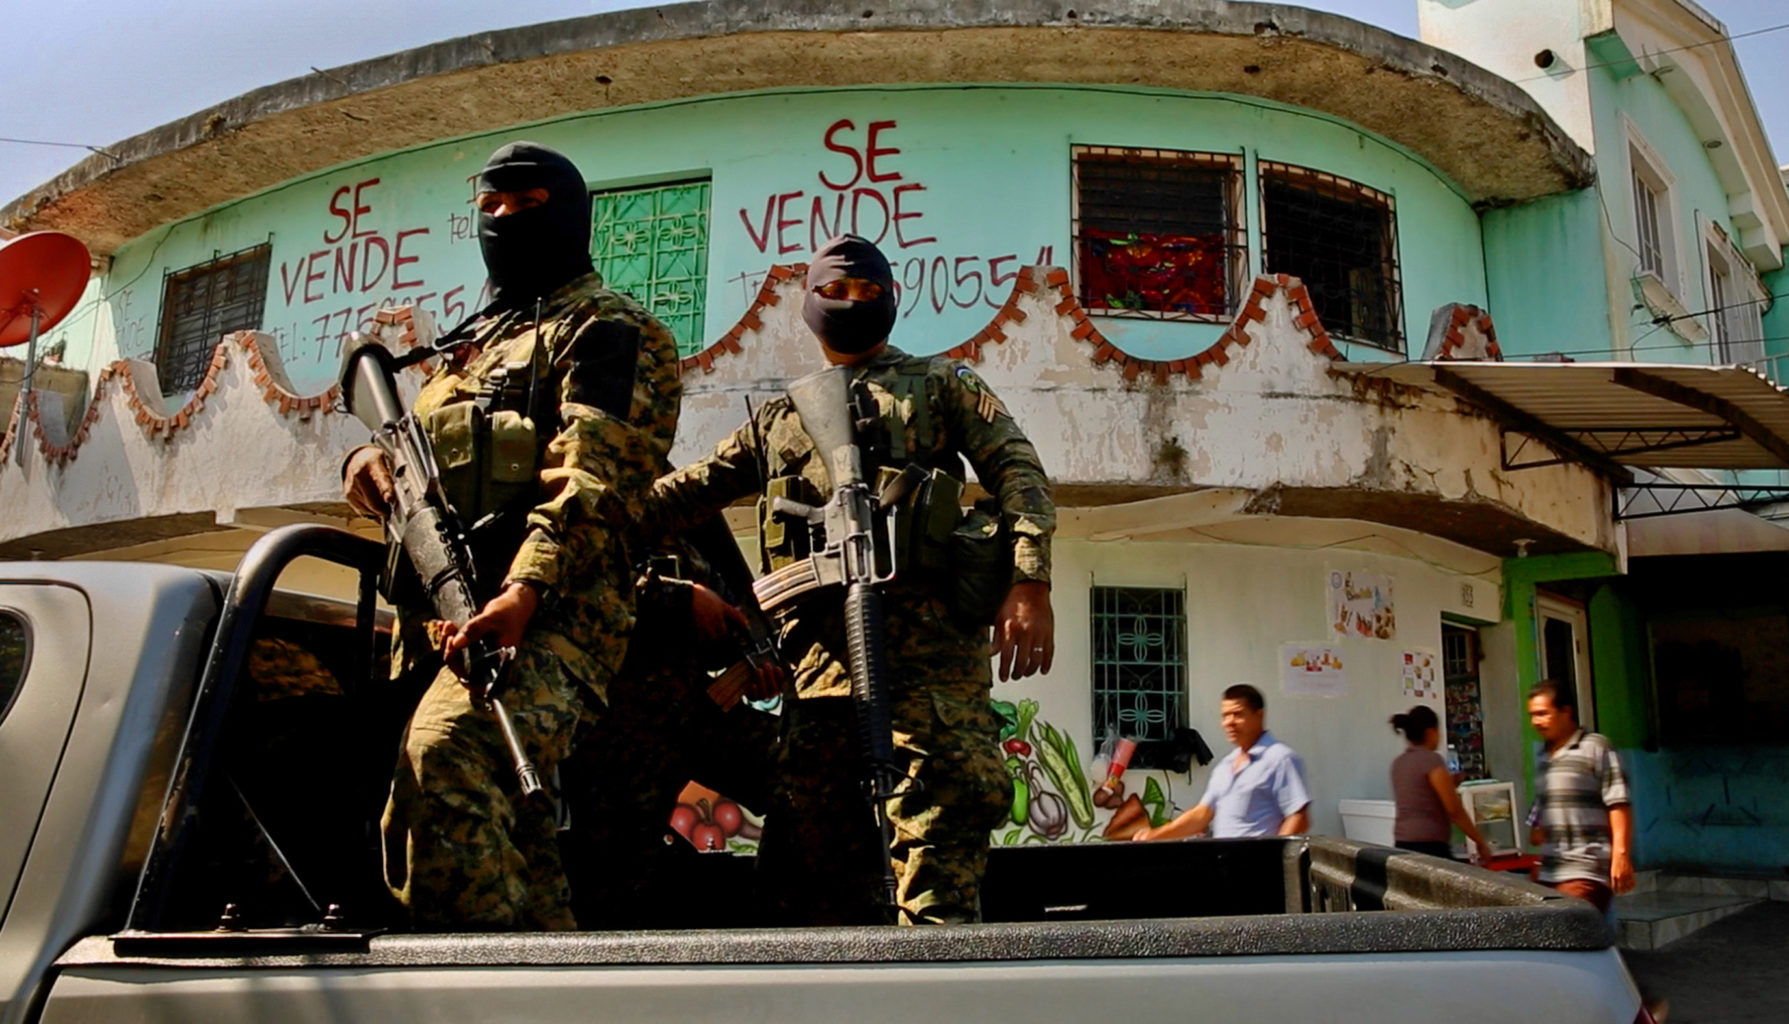 El Salvador's gang violence made it the murder capital of the world in 2015. About 262,000 Salvadorans have been allowed to live and work in the U.S. under a program known as temporary protected status, many fleeing violence or natural disasters. (Carolyn Cole/Los Angeles Times/TNS)